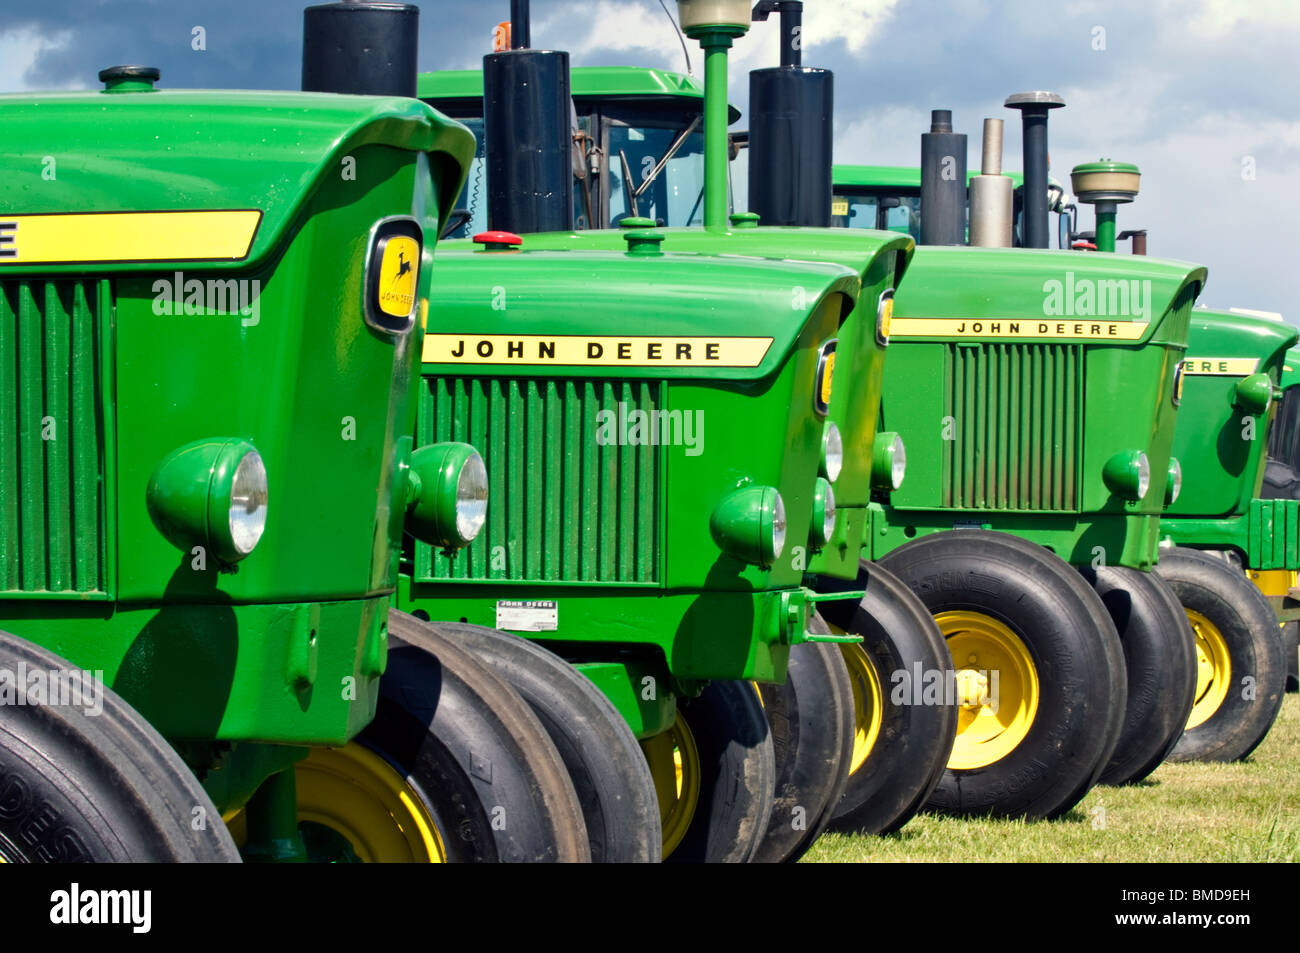 John Deere Line : John deere classic tractor line up stock photo royalty